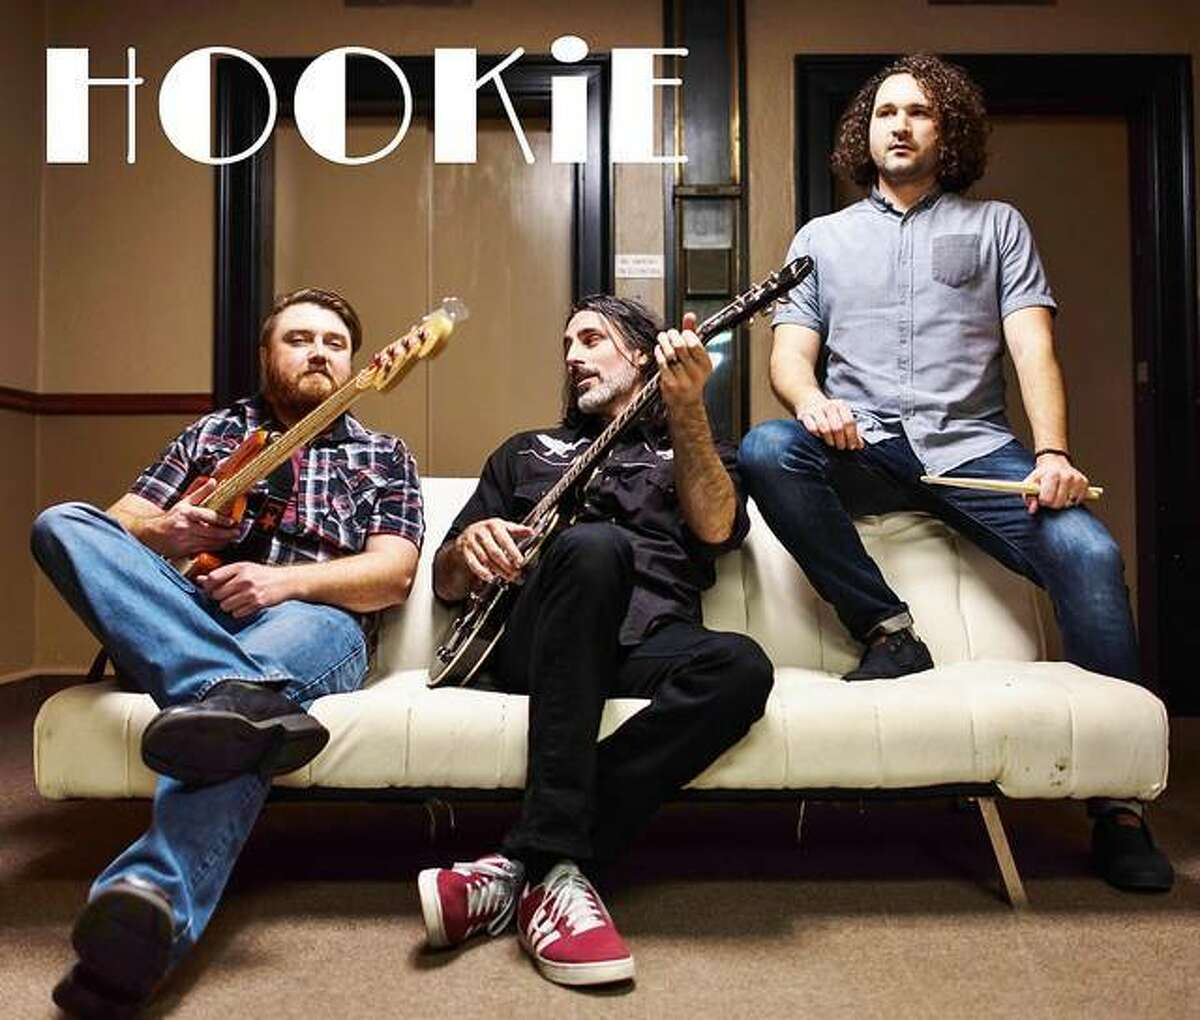 Hookie will perform as part of Grafton's music in the park on Thursday, Aug. 19 from 6:30-8:30 p.m.